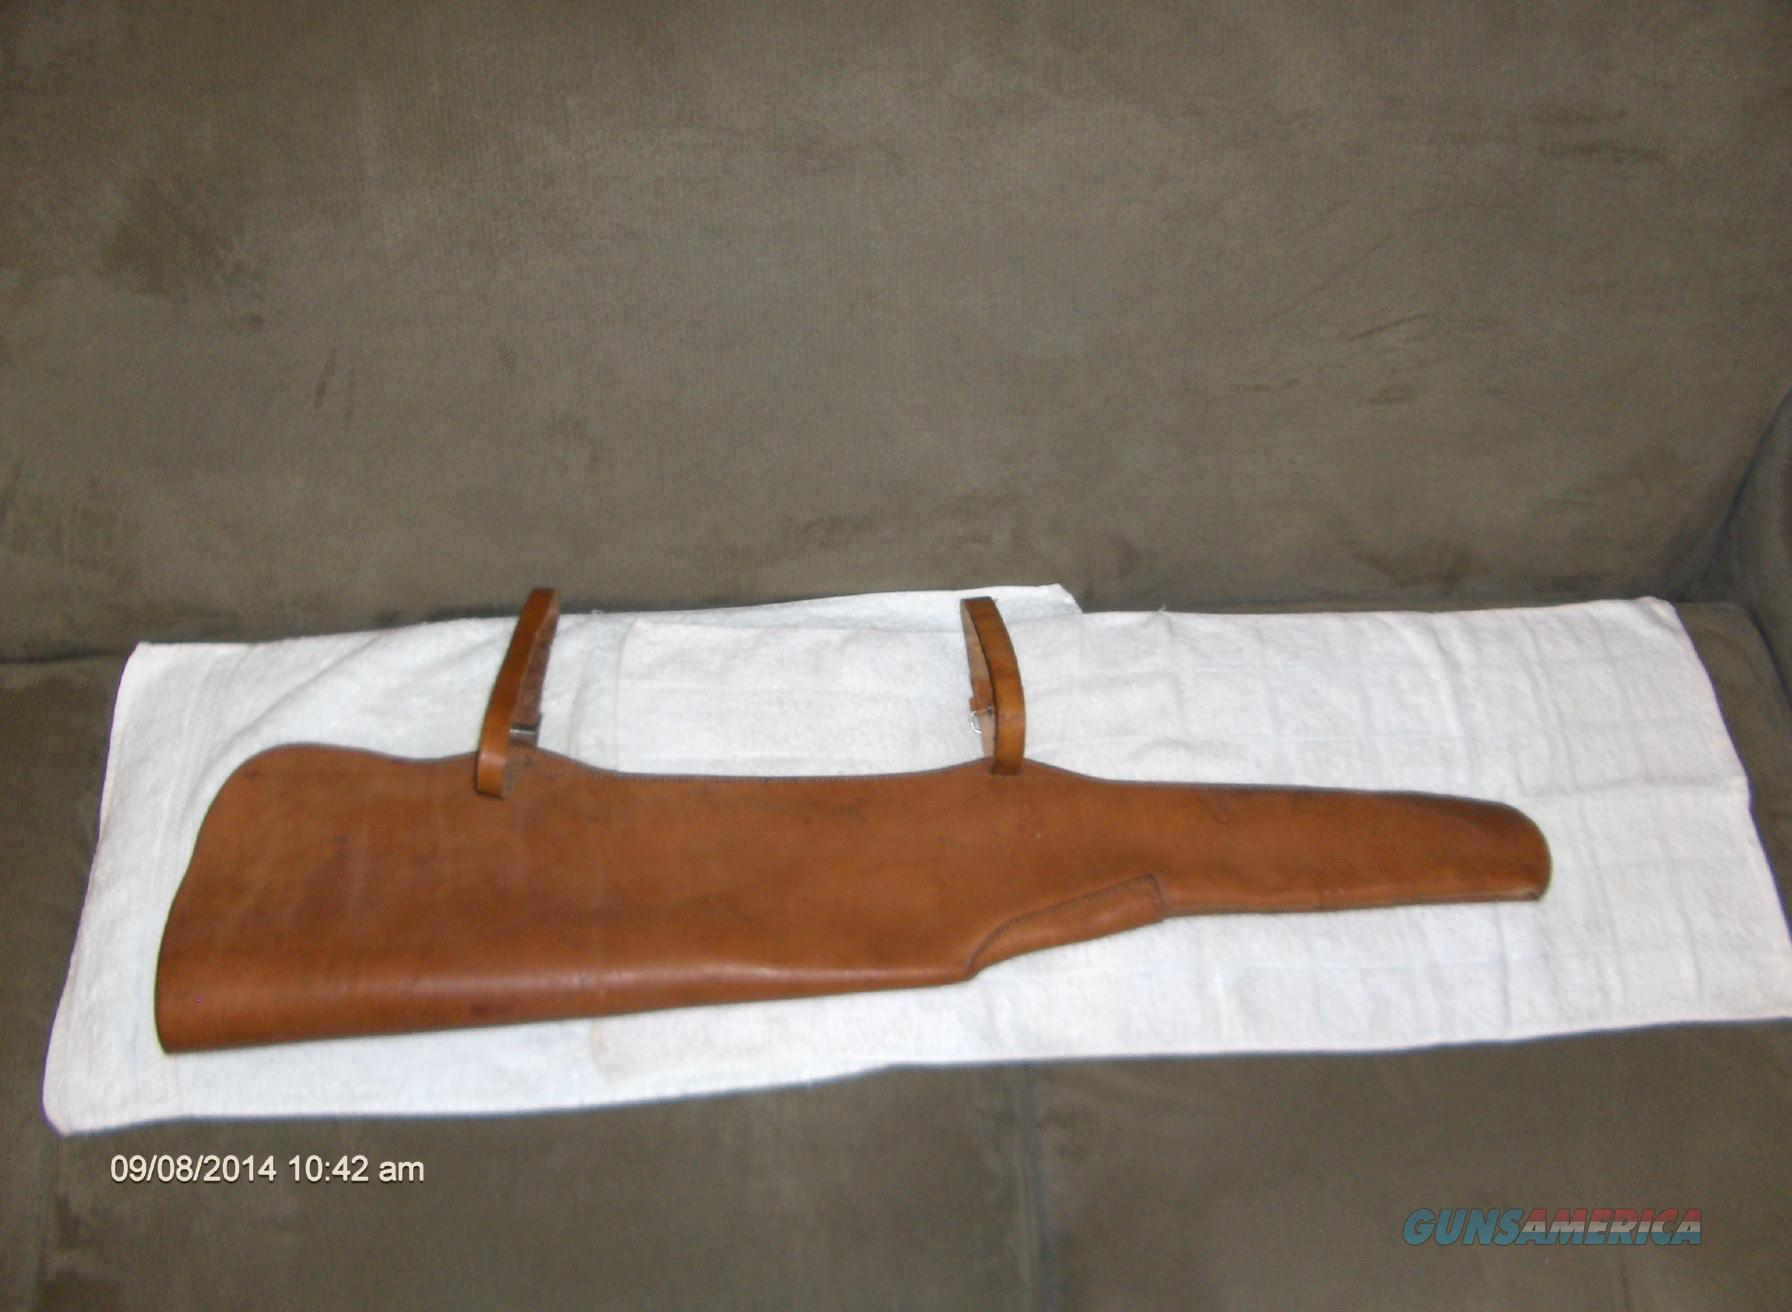 Near New Scoped Saddle Scabbard for Carbine Only $75.00  Non-Guns > Gun Cases